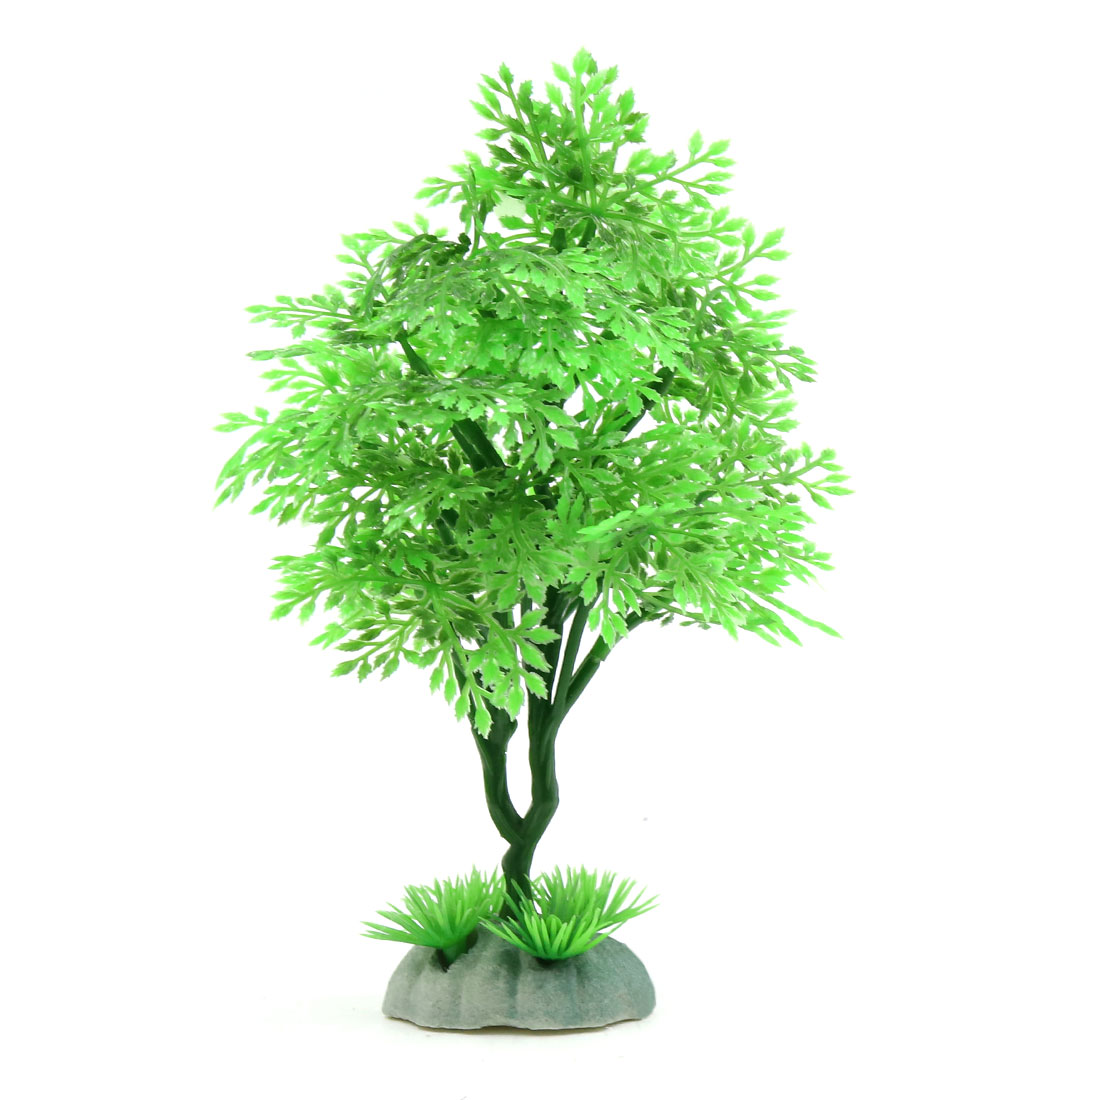 Light Green Plastic Tree Aquarium Fishbowl Landscape Ornament 6.1inch Height